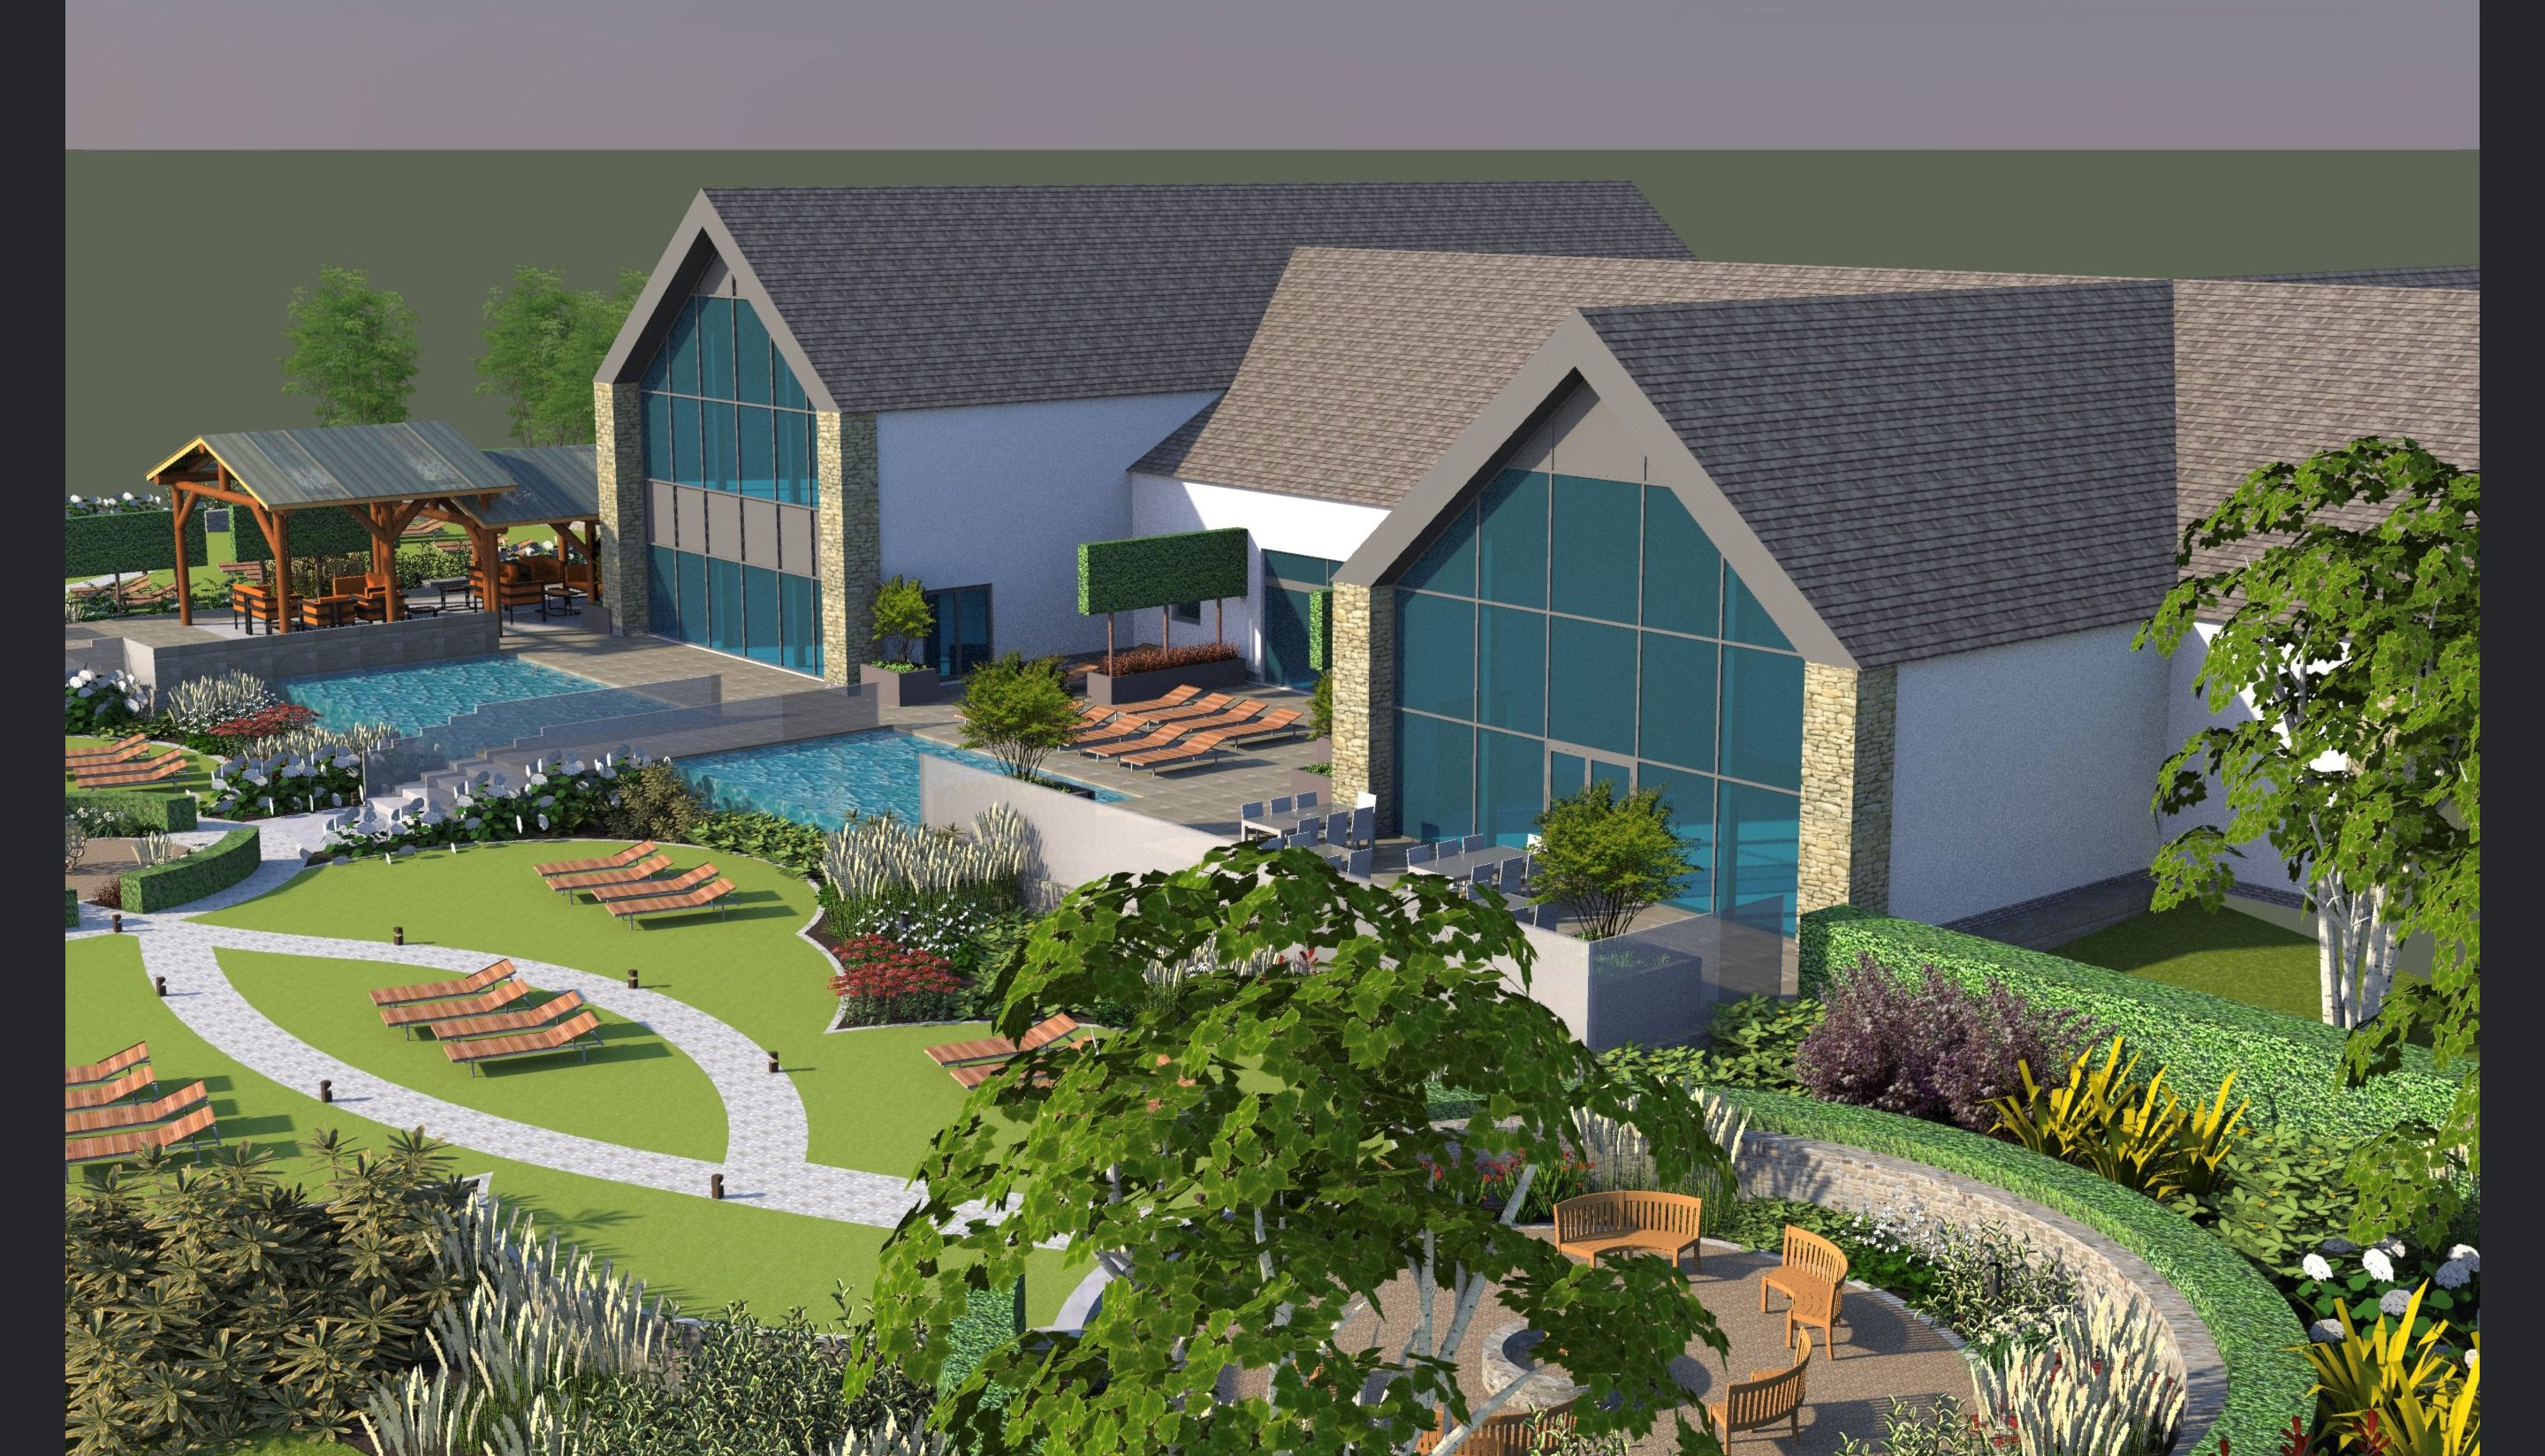 WORK STARTS ON A NEW SPA AT BREEDON PRIORY HEALTH CLUB